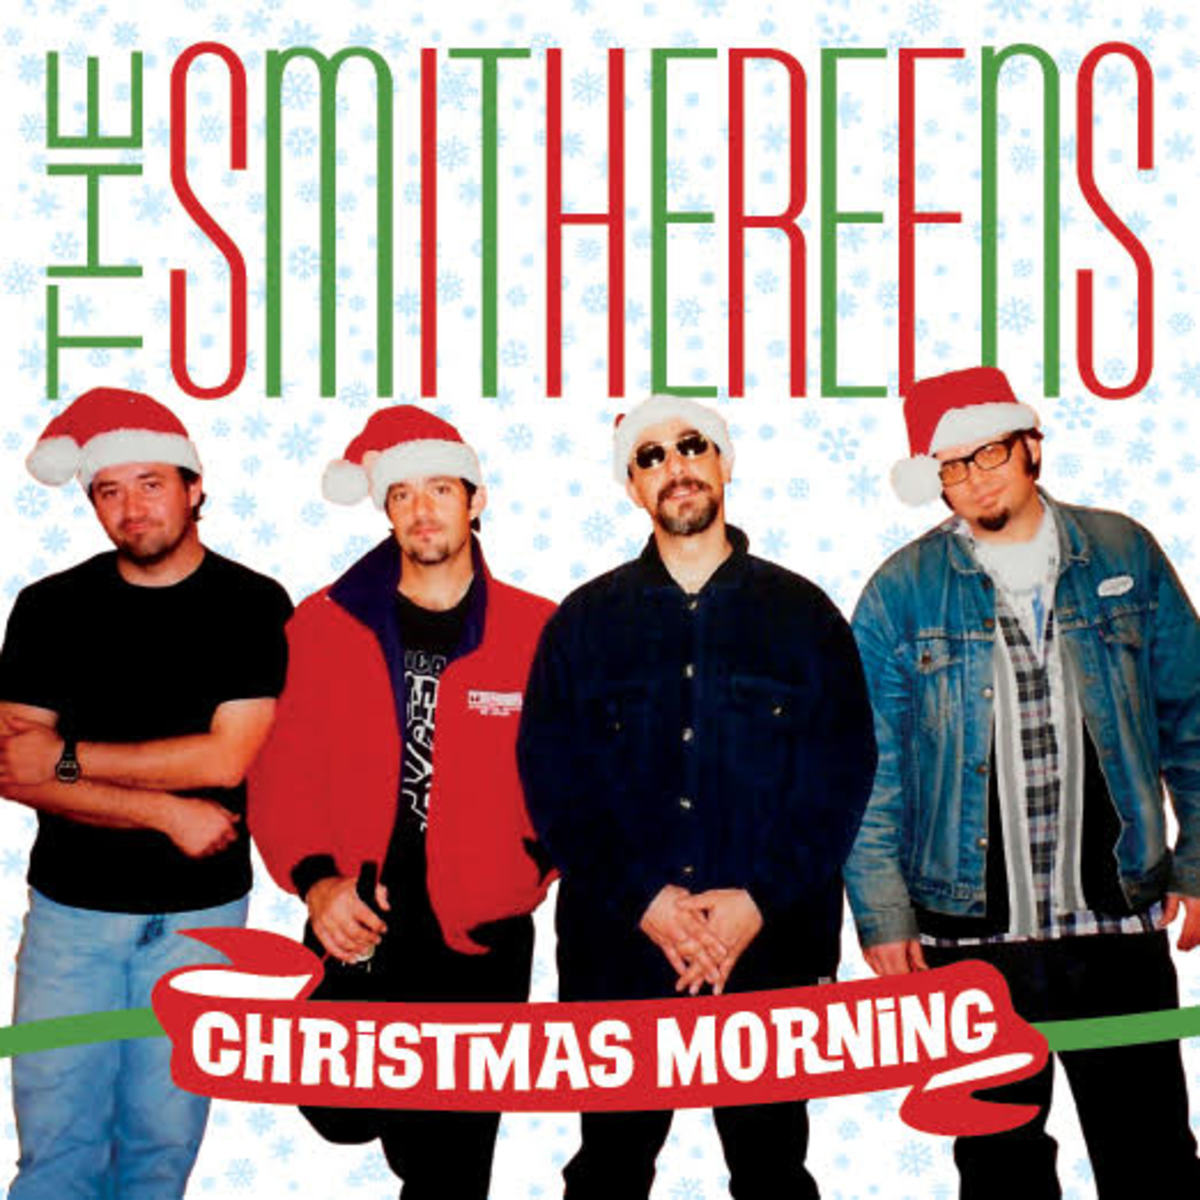 """The Smithereens' """"Christmas Morning"""" single is available as a seven-inch, green vinyl 45-RPM single and as a digital download."""